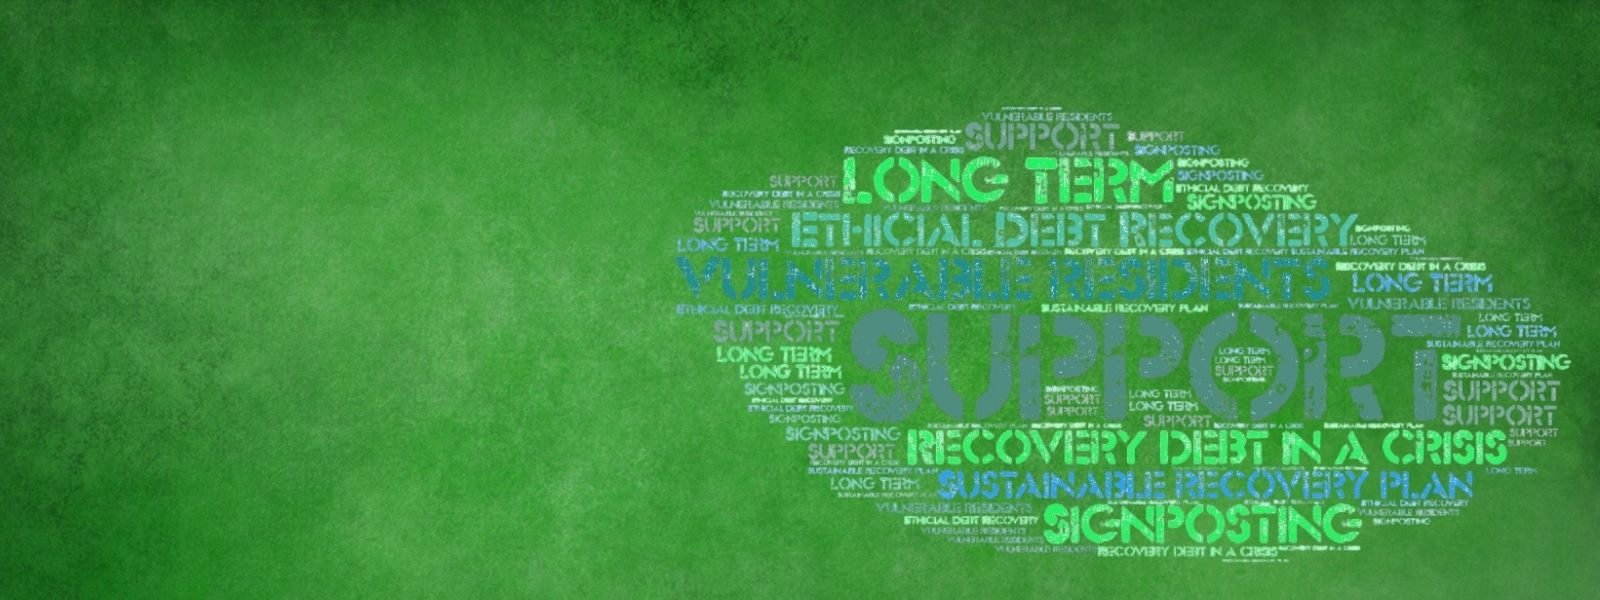 Ethical Debt Recovery